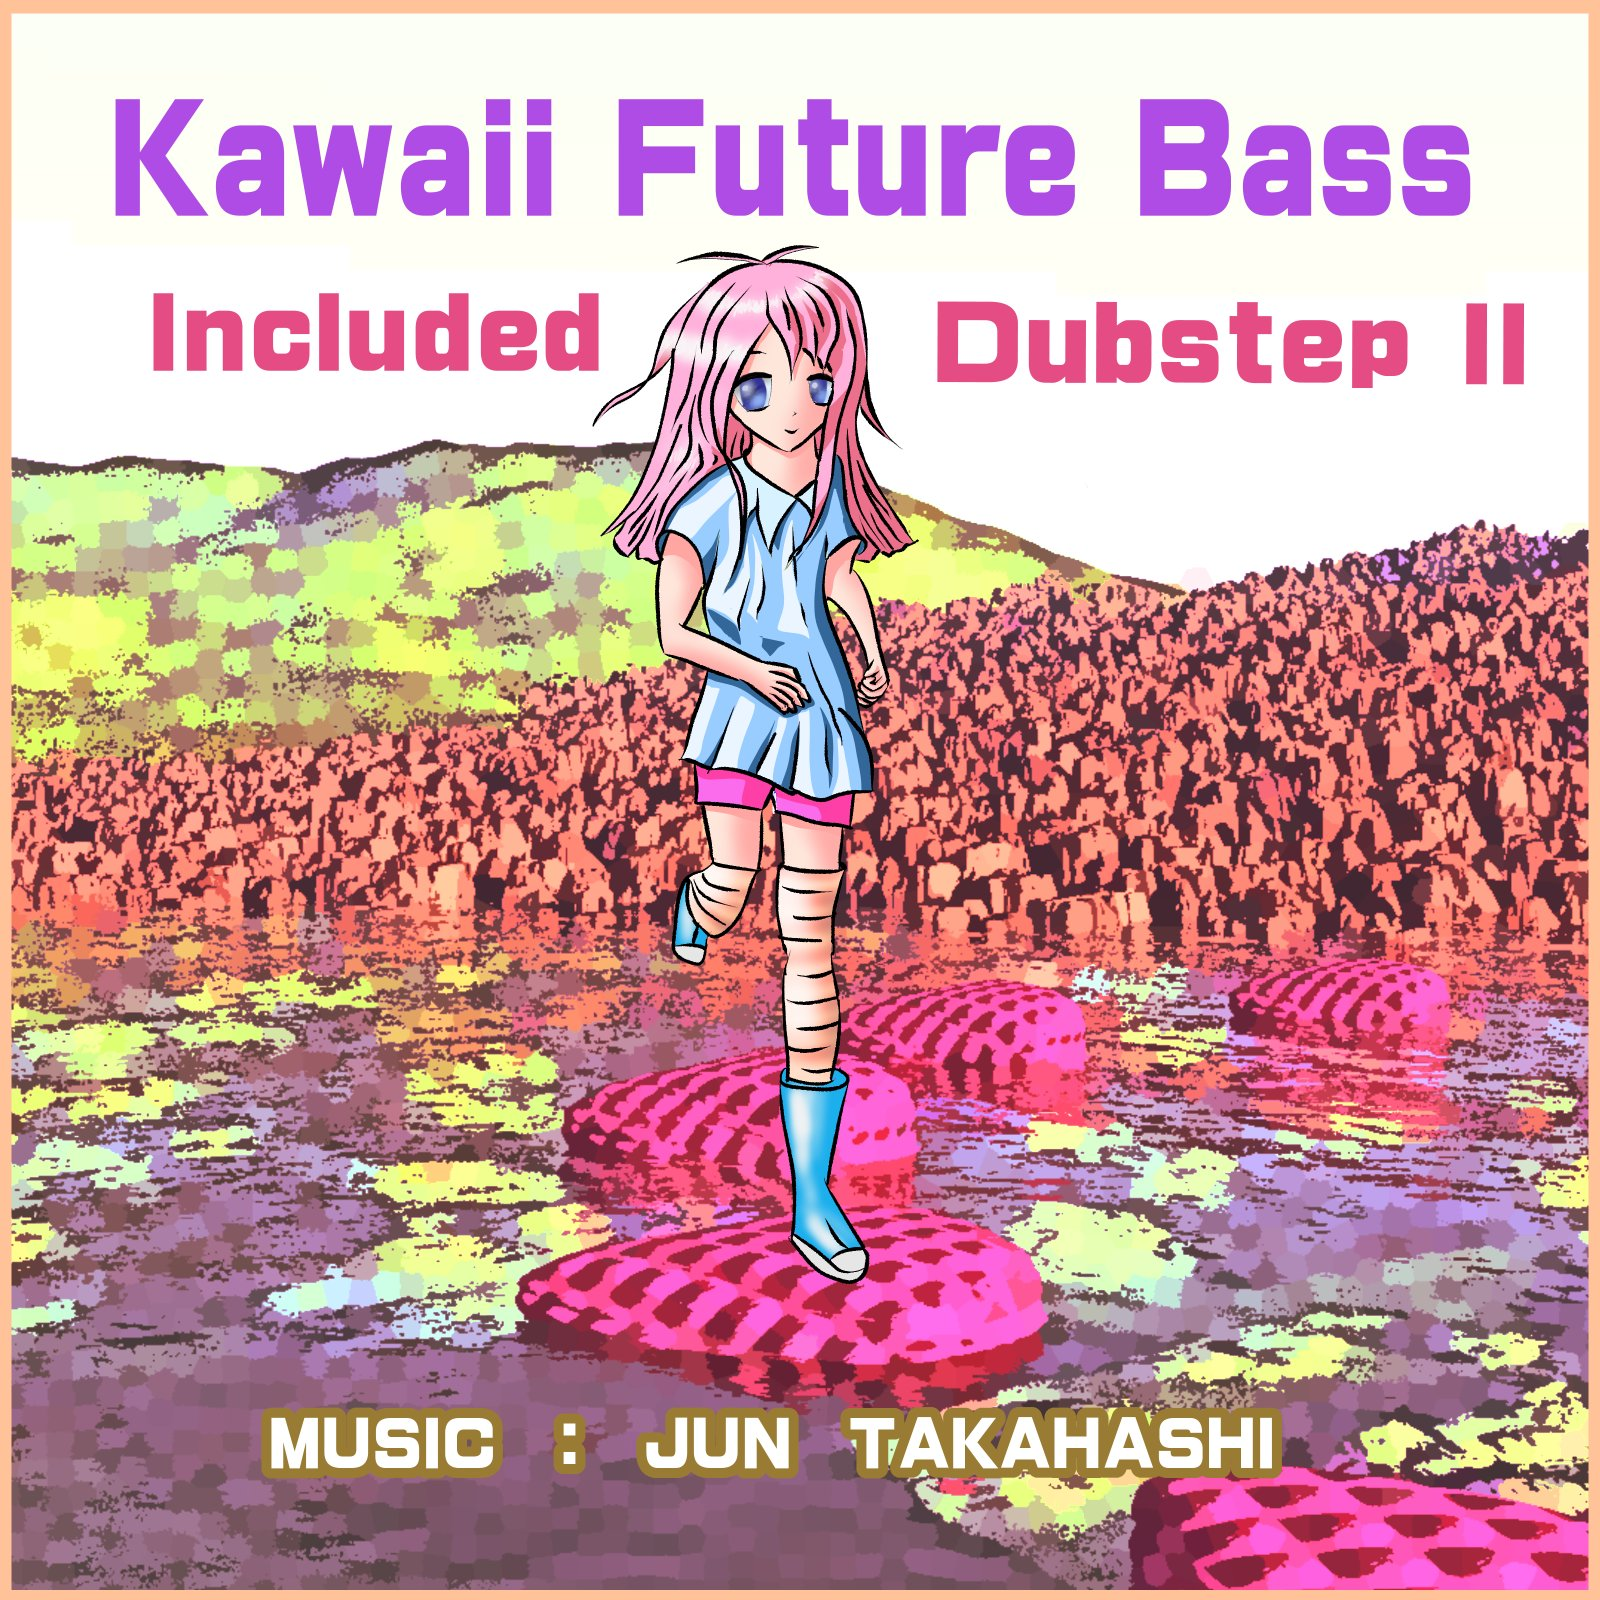 Kawaii Future Bass incliuded Dubstep II